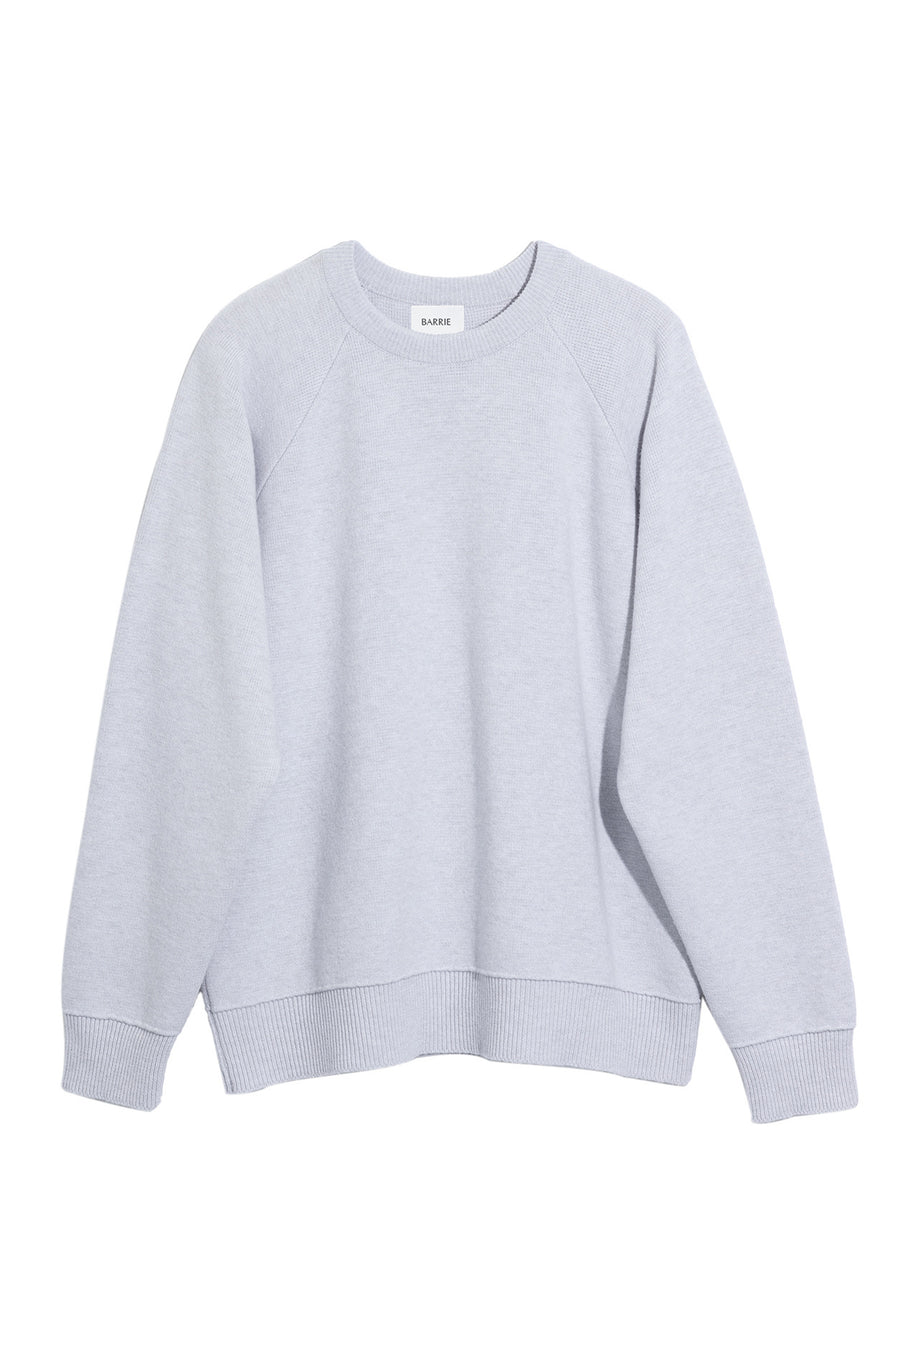 Ripple Neck Detail Sweater in Grey Calcite